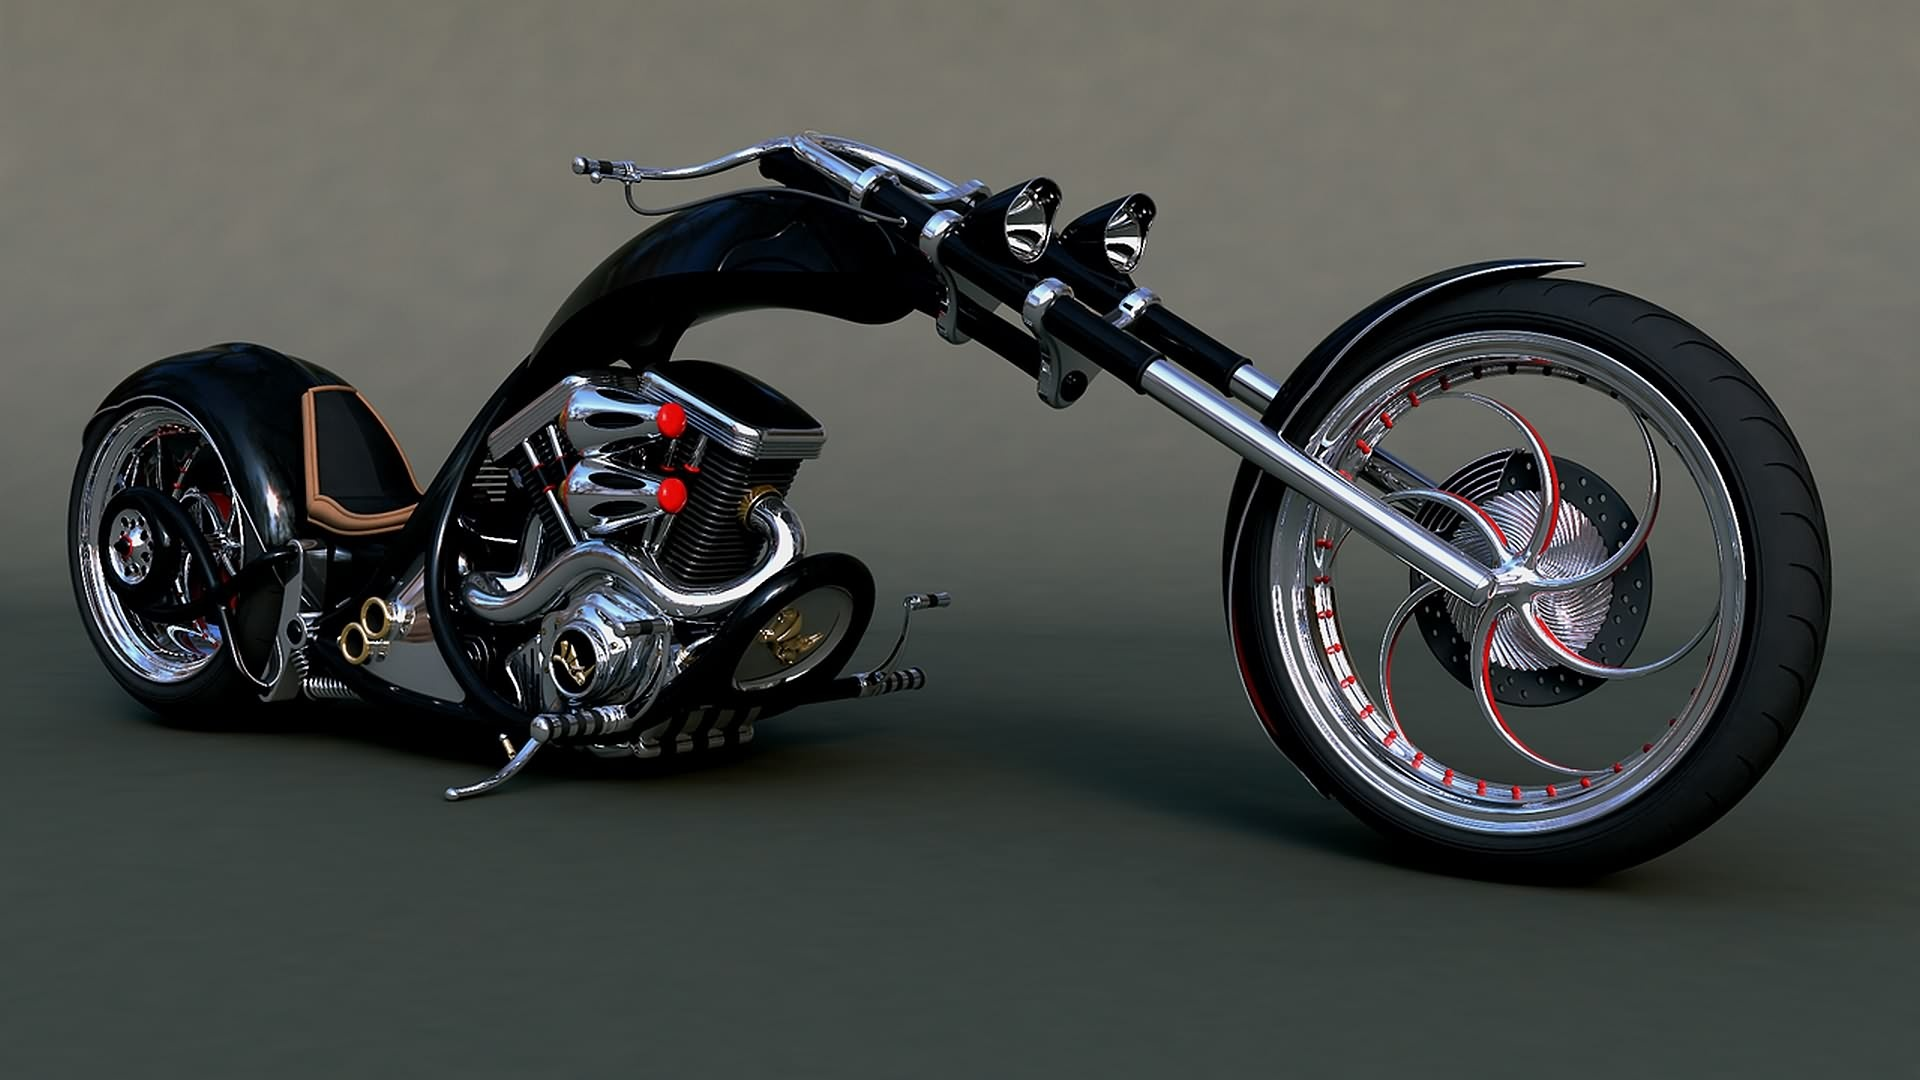 Slim Chopper Bikes HD wallpaper | HD Latest Wallpapers